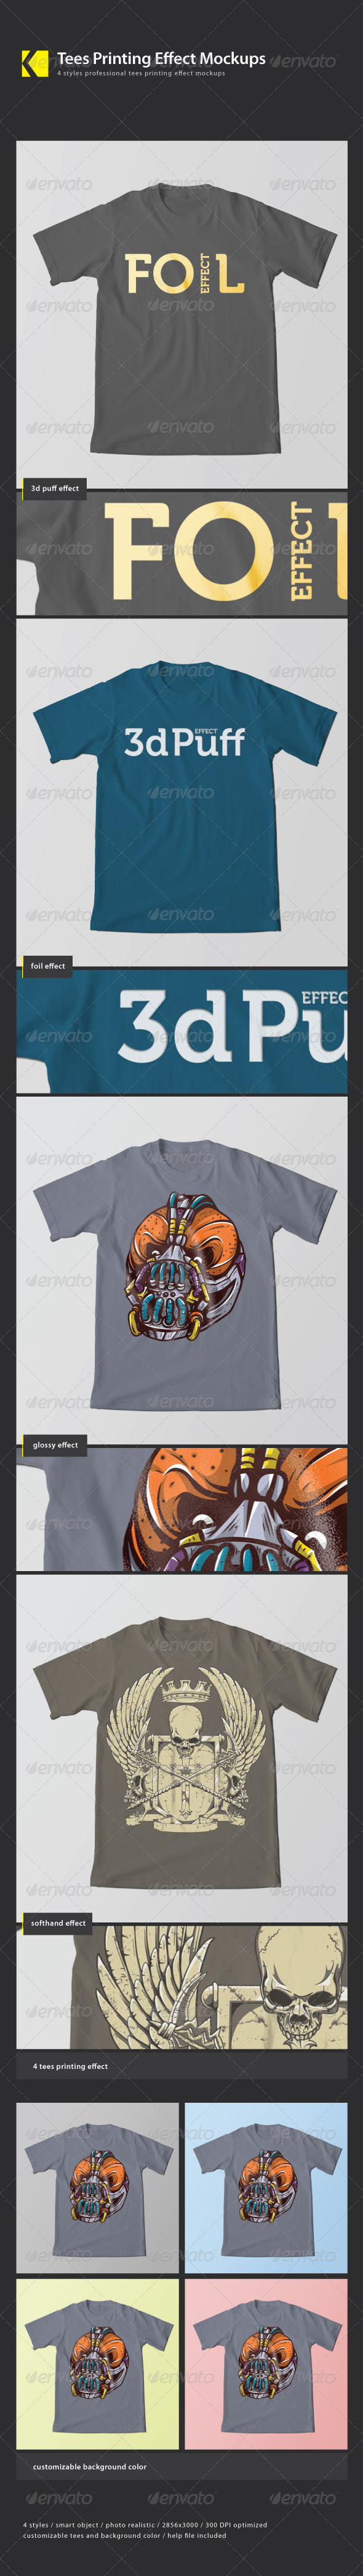 GraphicRiver Tees Printing Effect Mockup 3520291